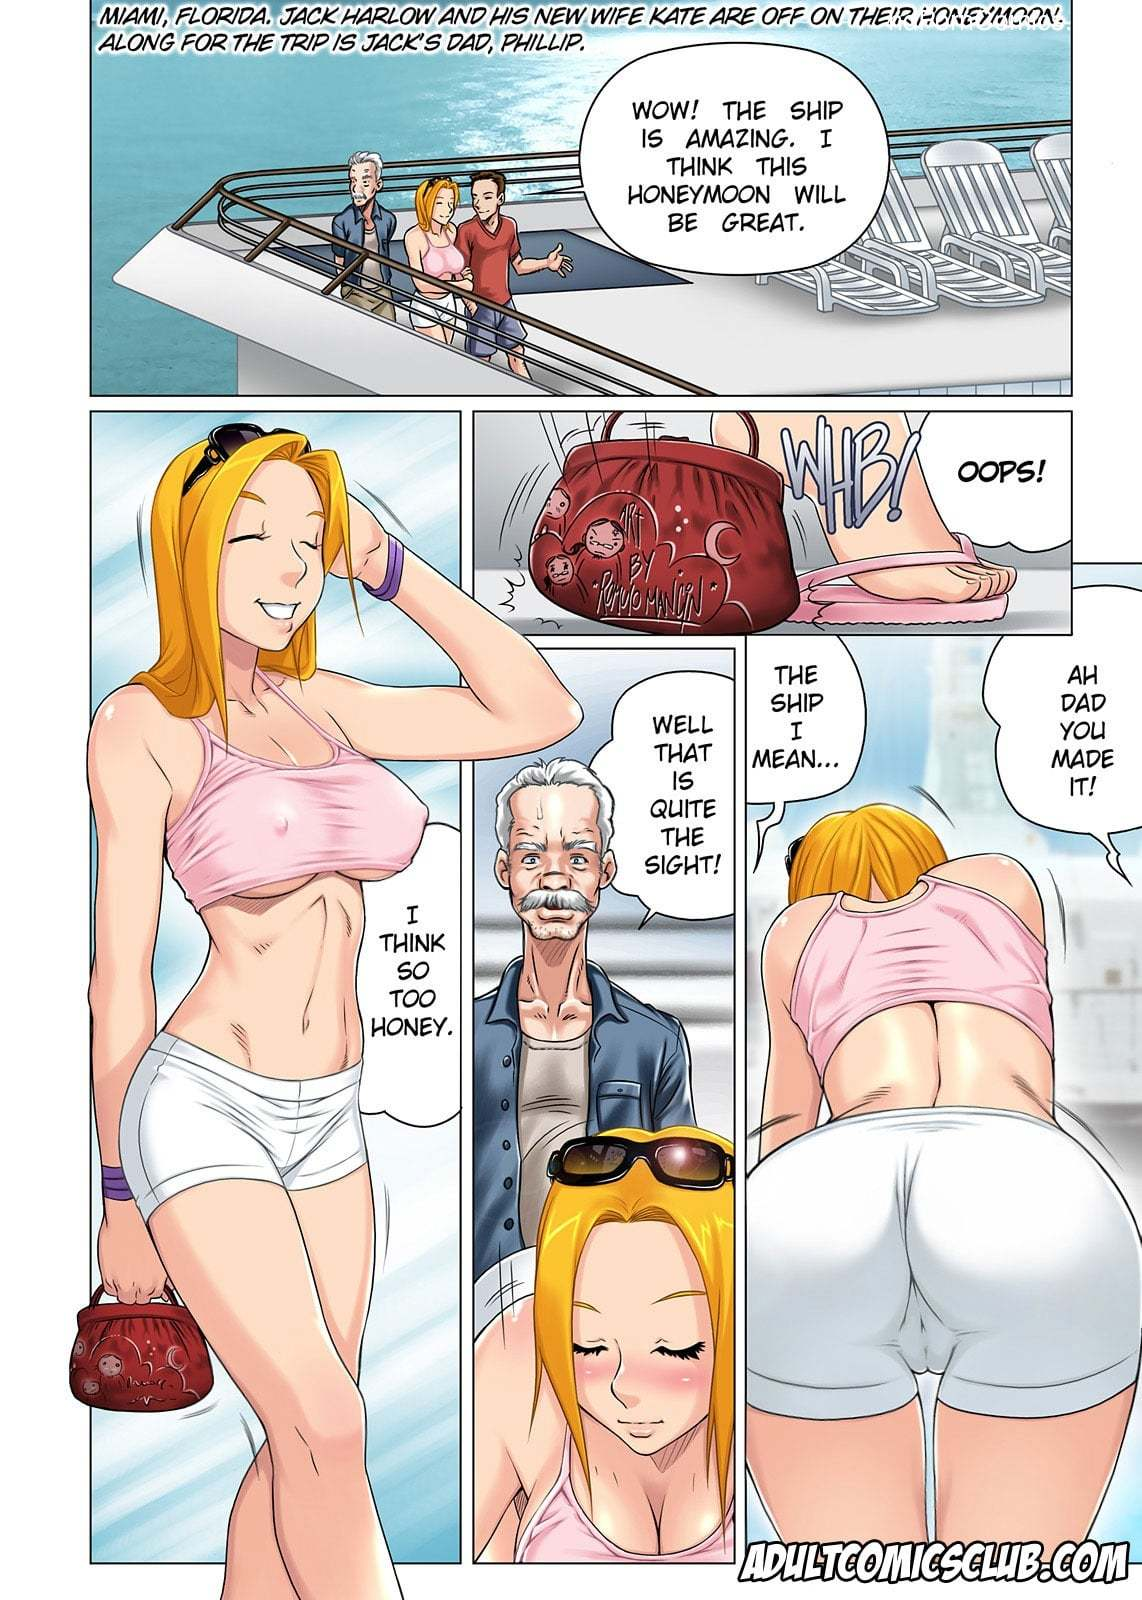 The Horny Stepfather 1-223 free sex comic